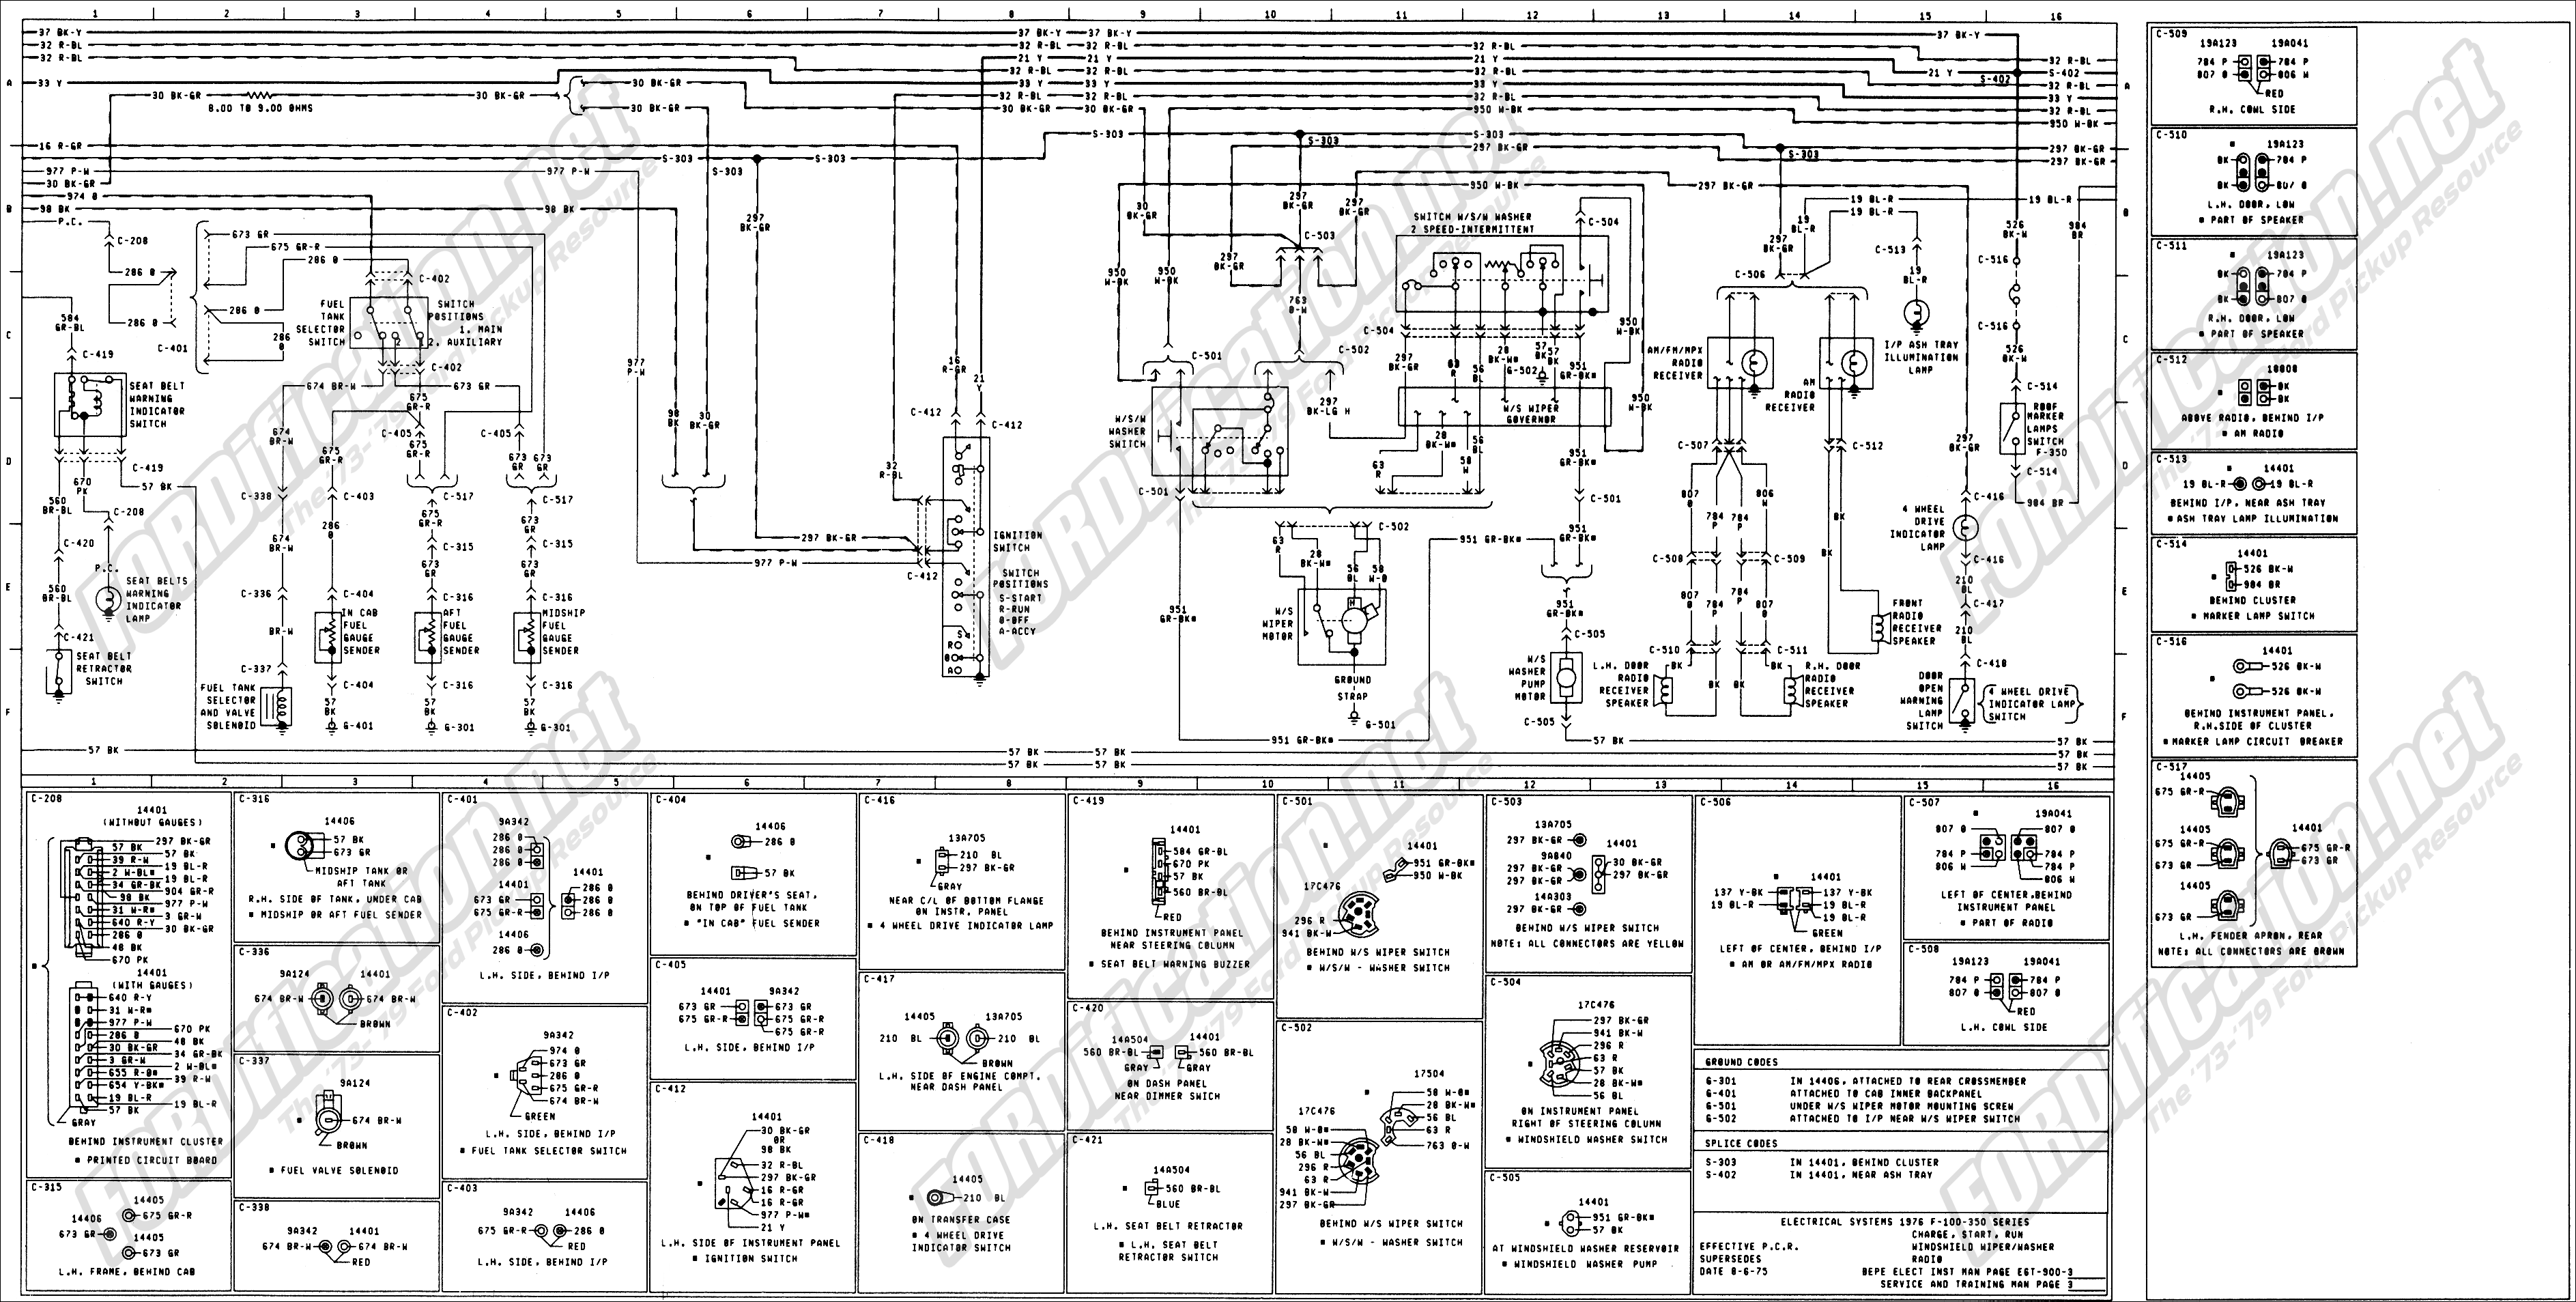 2004 F150 Radio Wire Diagram Simple Guide About Wiring Ford F 150 Power Mirror Switch 1973 1979 Truck Diagrams Schematics Fx4 Harness